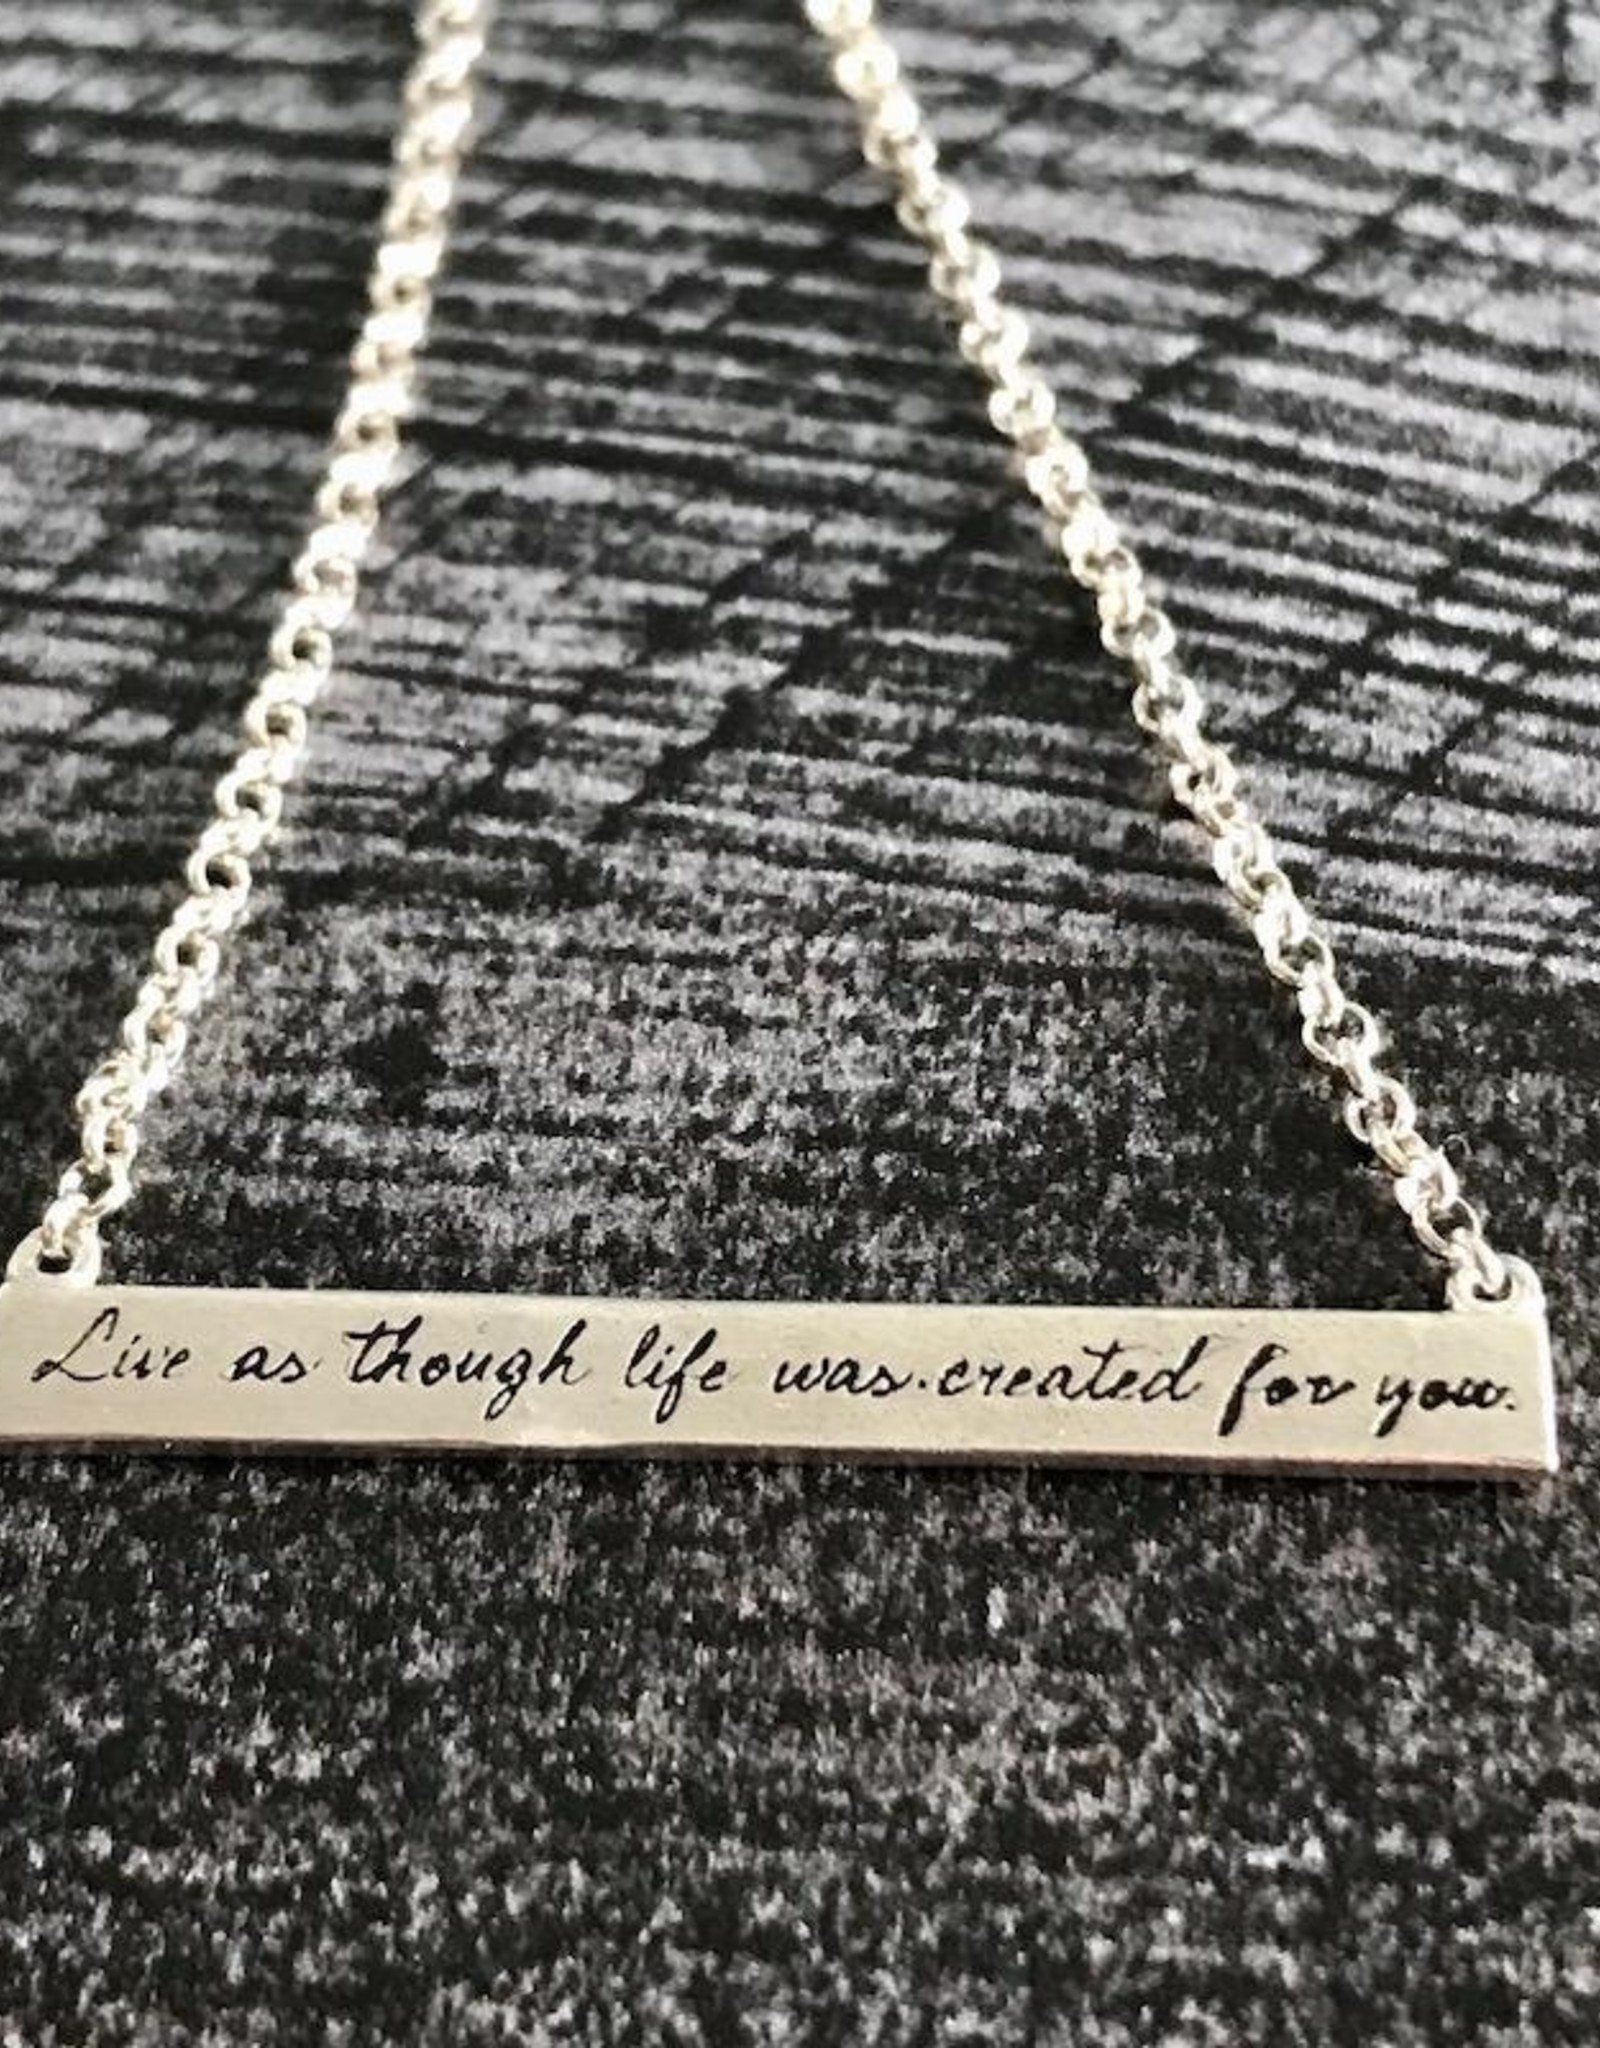 """Handmade SS Maya Angelou ID Necklace, """"Live as though life was created for you"""""""